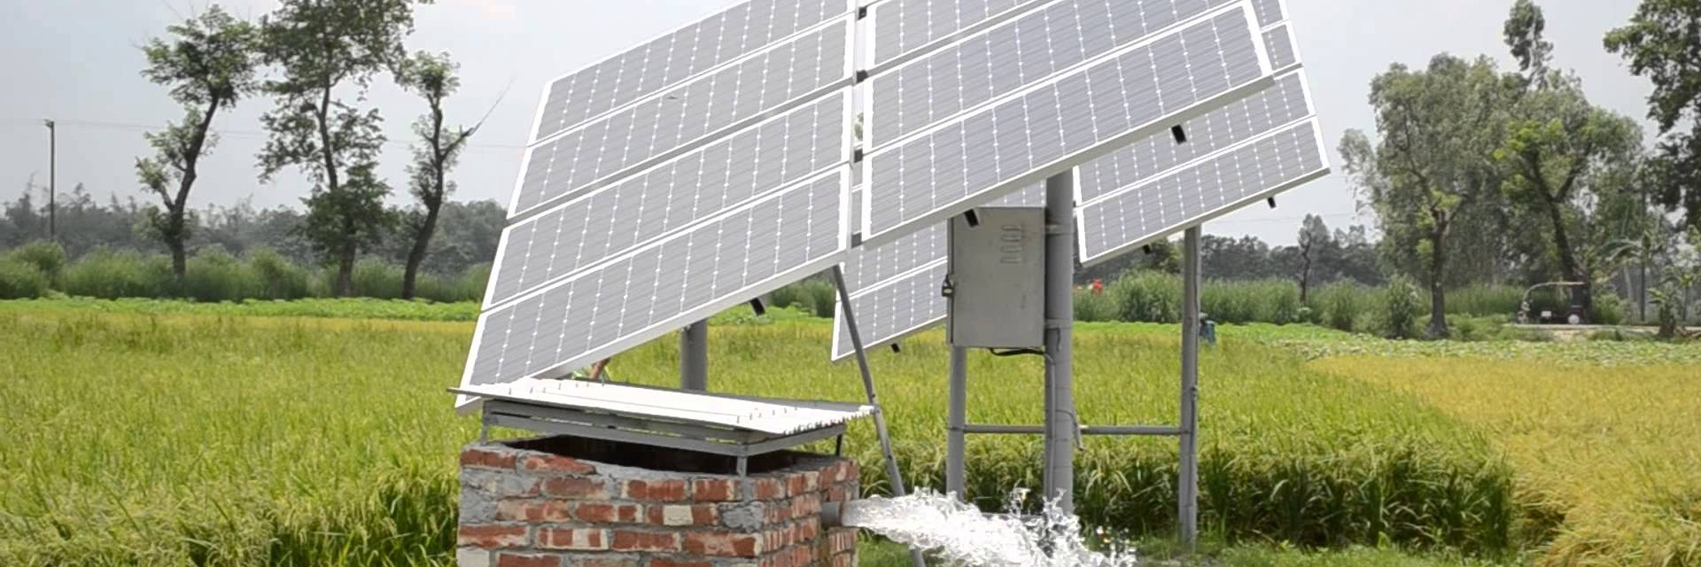 DC SOLAR PUMPS